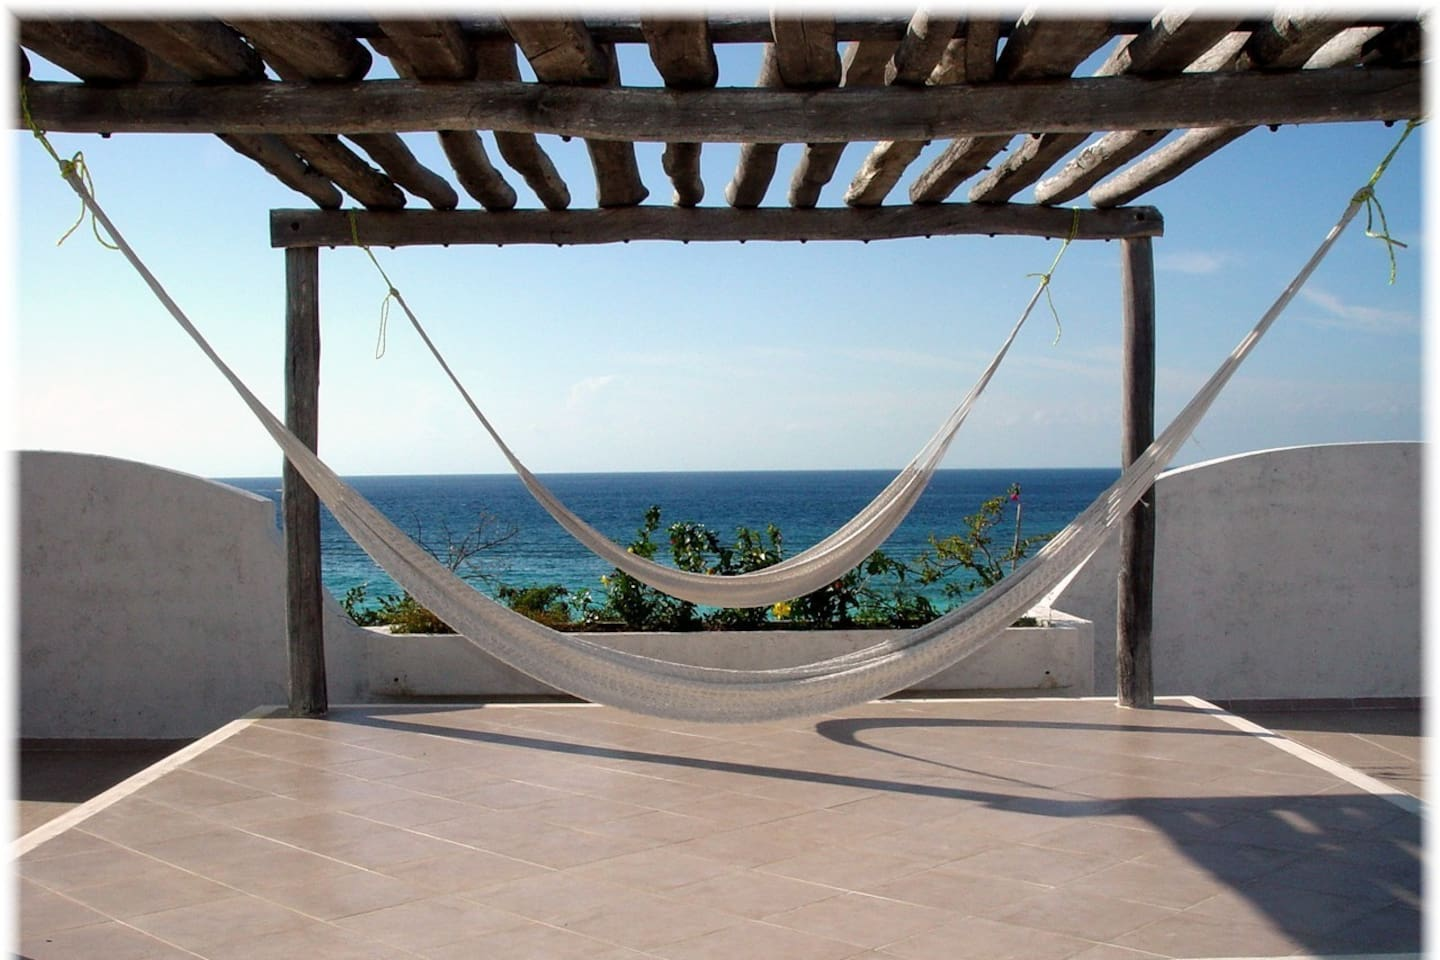 The roof is a fantastic place to lounge, watch sunsets, sunbathe, or count the stars at night.